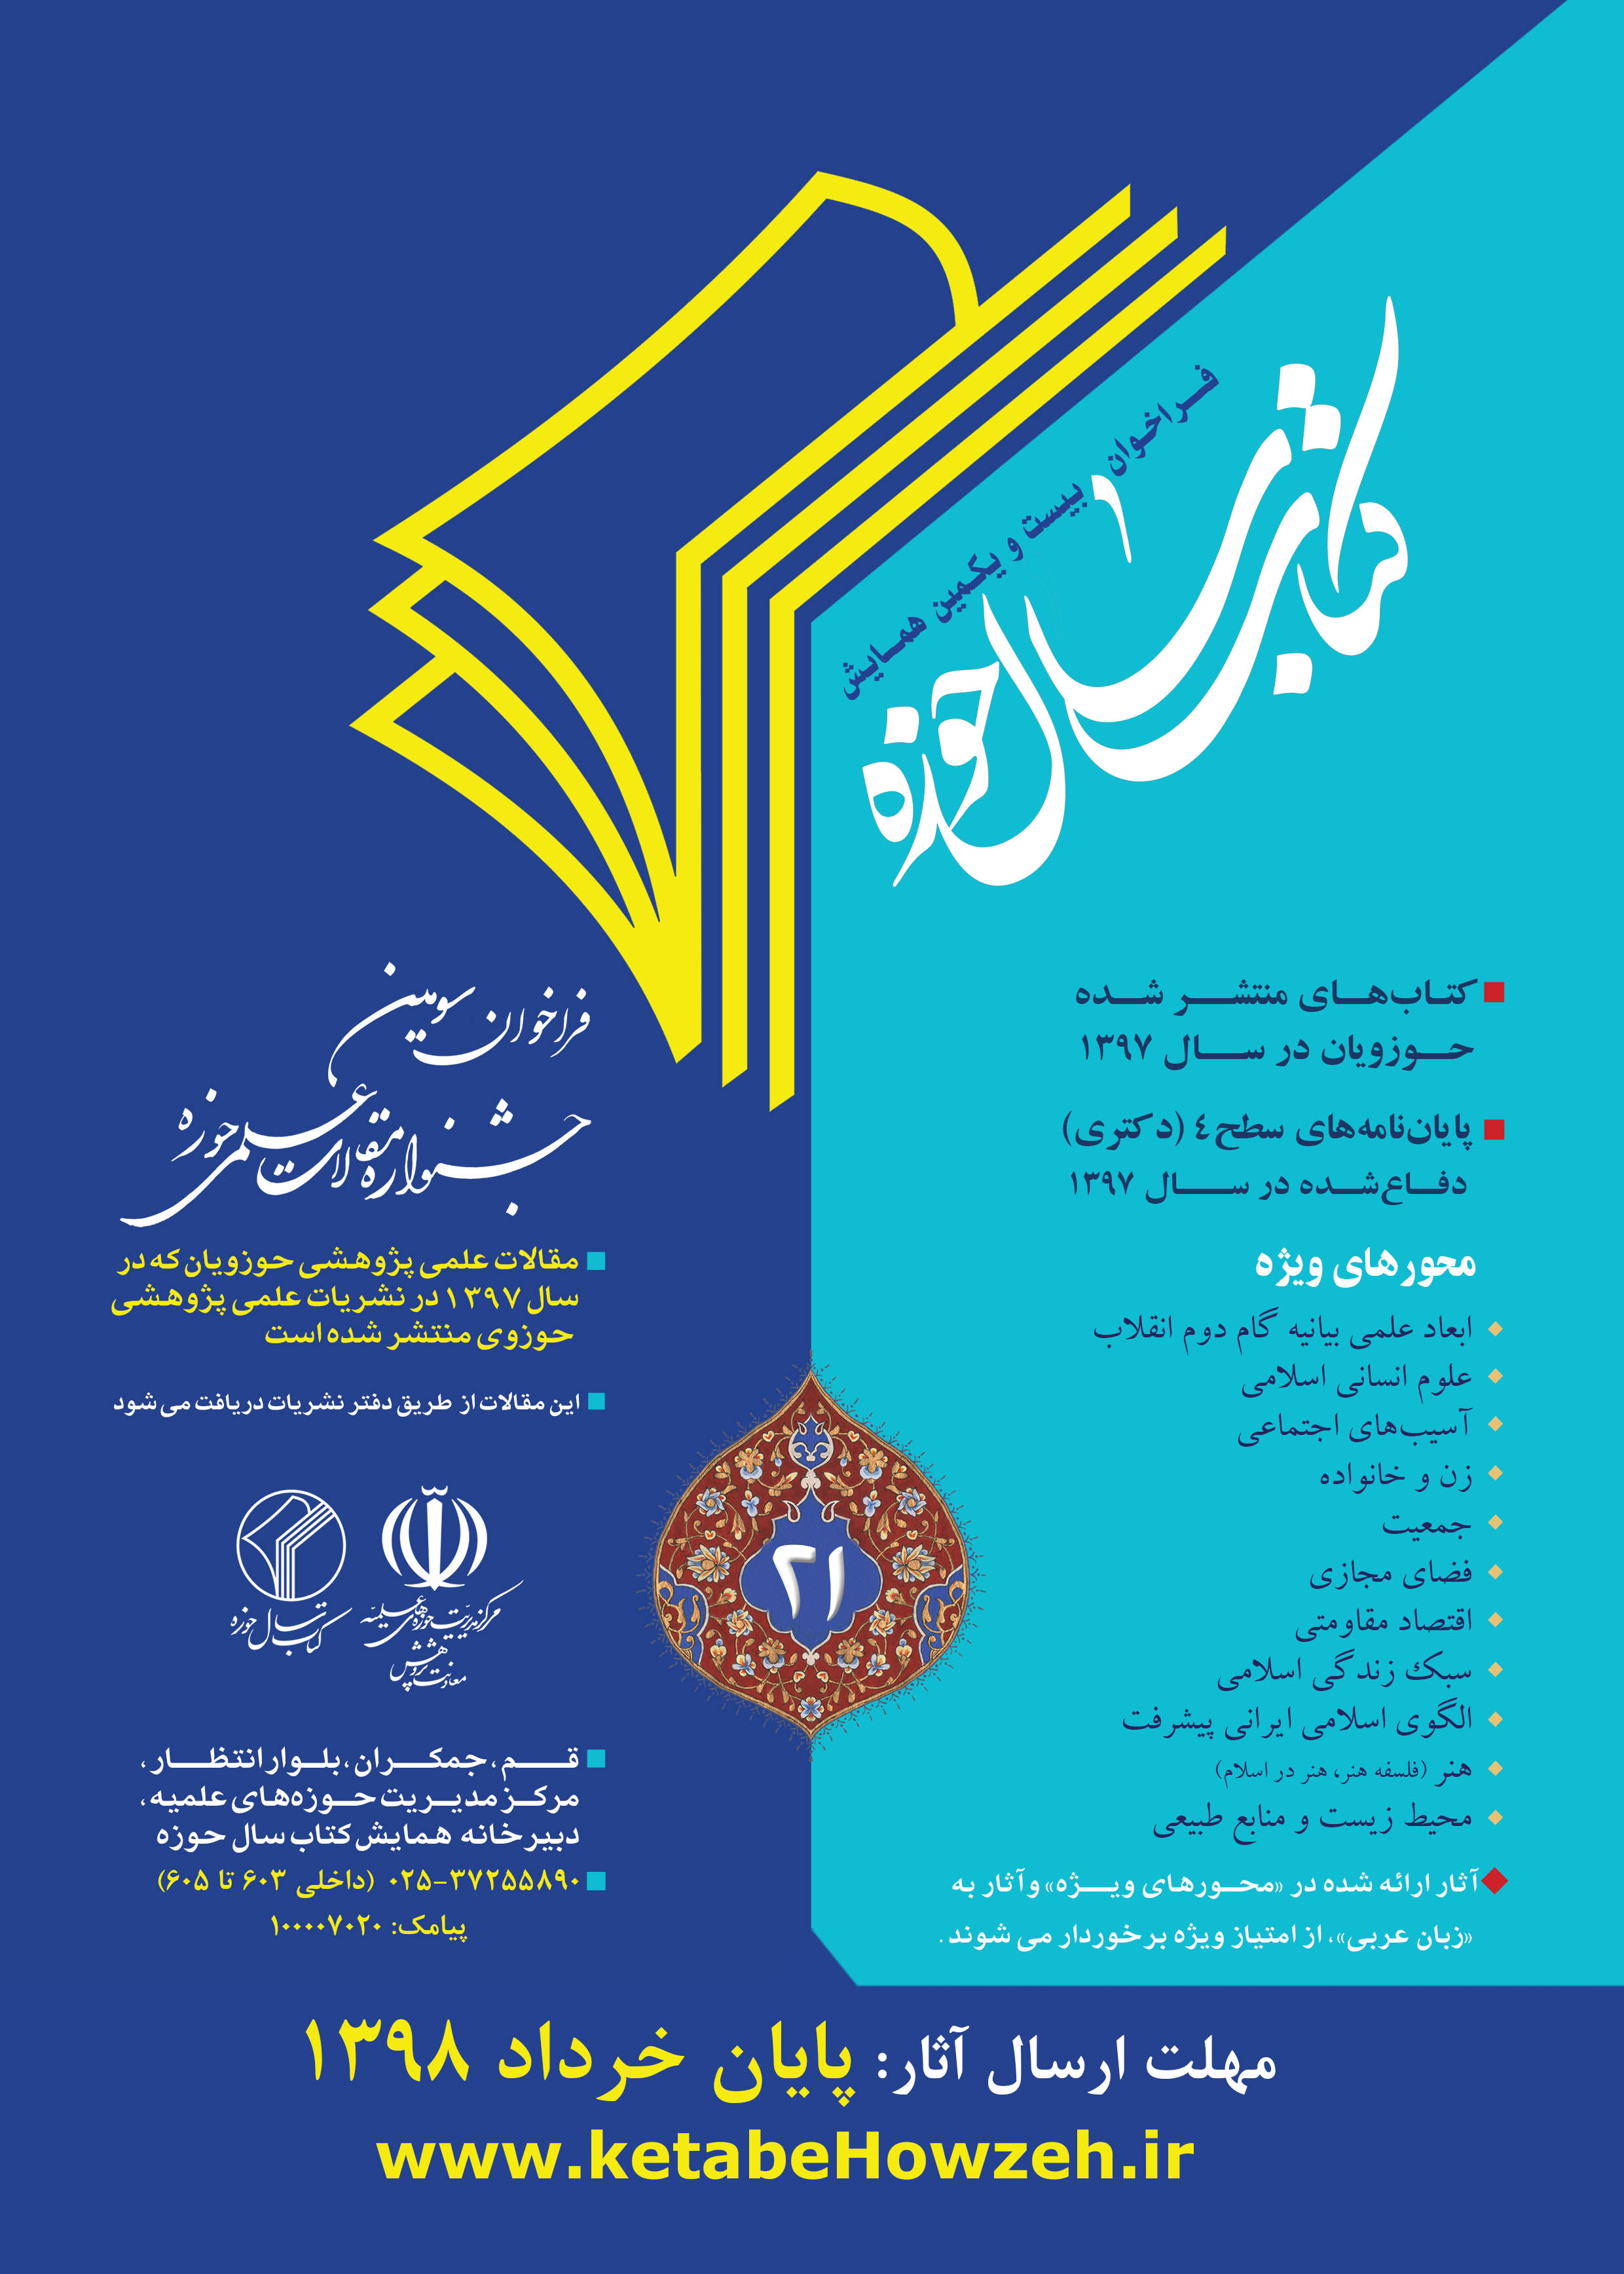 Call for submissions for the ۲۱st Islamic seminaries of Iran Book of the Year Awards